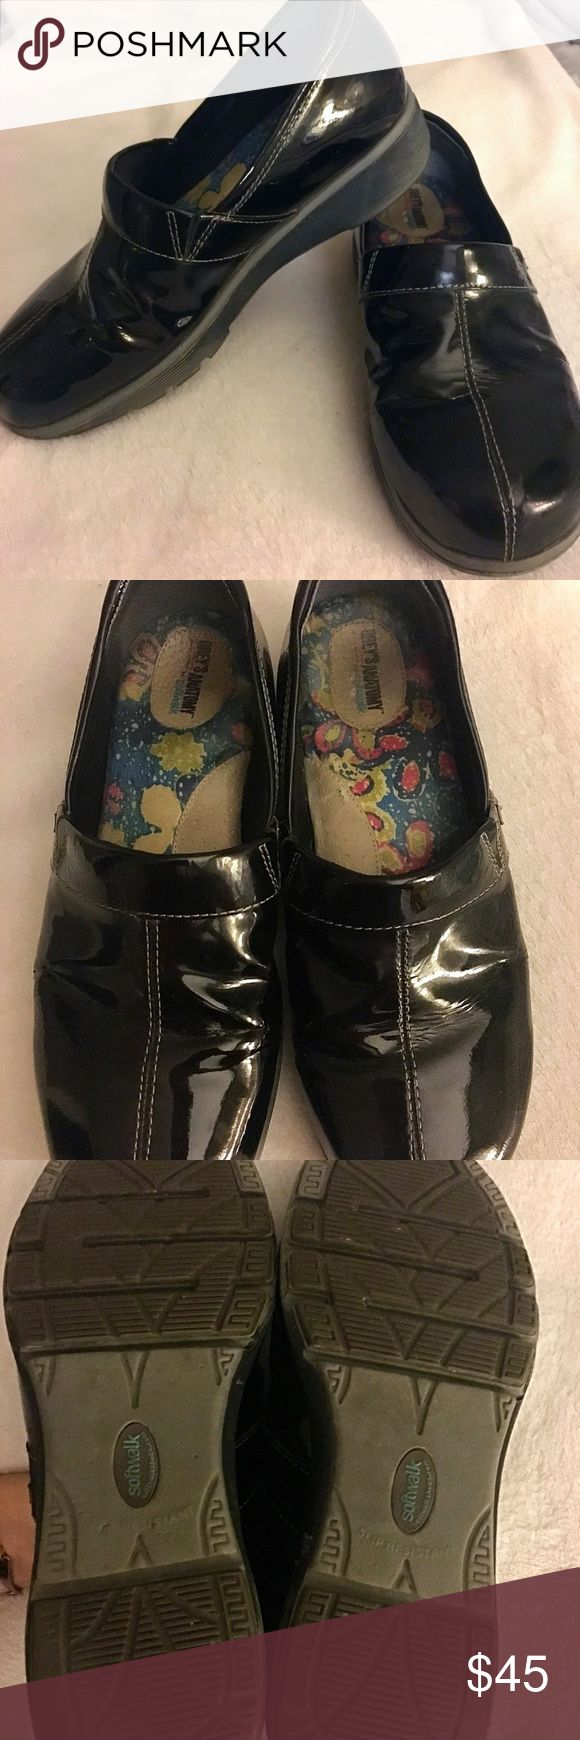 Grey's Anatomy Meredith softwalk nursing shoe/clog Grey's Anatomy black patent leather softwalk nursing shoe/clog. Size 9. The style is Meredith and it is a slip on. This shoe is in EXCELLENT condition!! Can use a slight cleaning but look almost new from the outside. Very comfortable and a must have if you work a job that requires you to stand on your feet all day! This shoe costs over 100$ so get this price while you can! SoftWalk Shoes